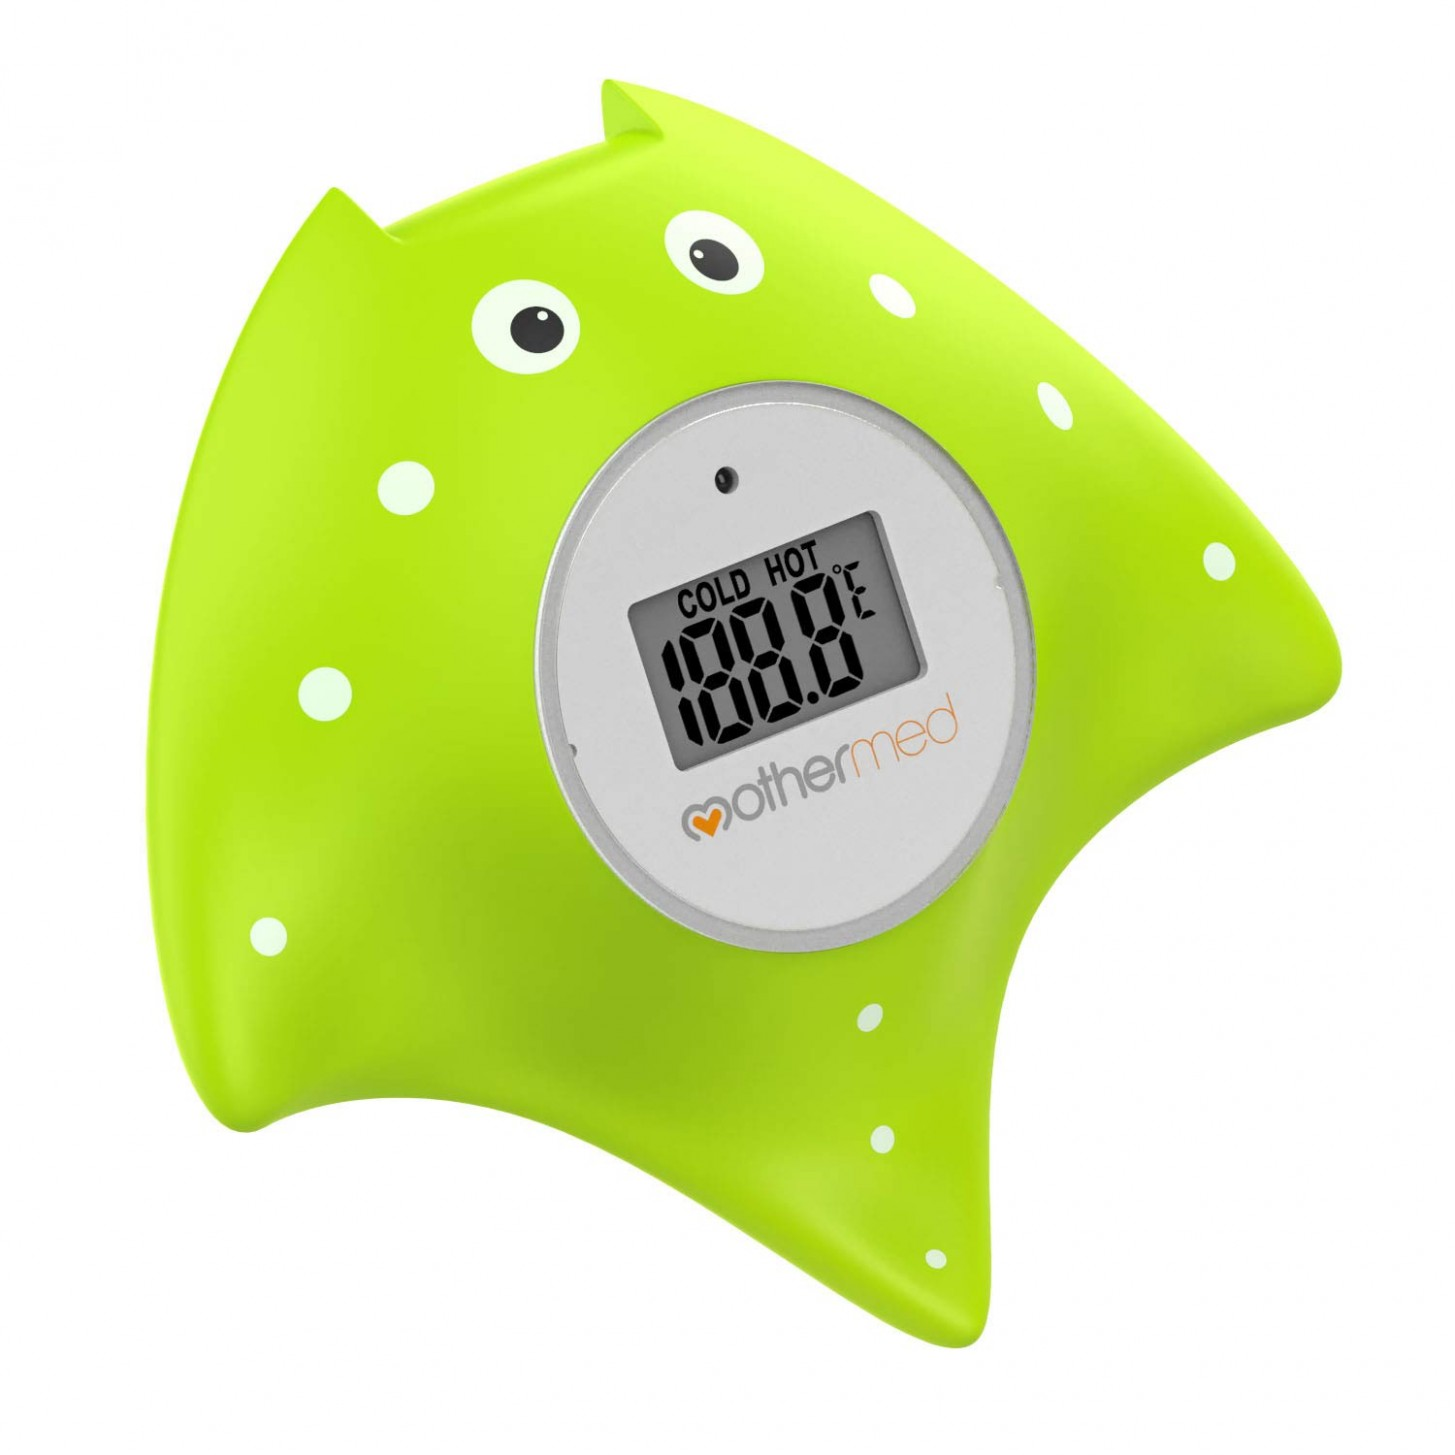 MotherMed Baby Bath Thermometer and Floating Bath Toy Bathtub Safety  Temperature Thermometer Green Fish Only for Fahrenheit - Baby Room And Bath Thermometer